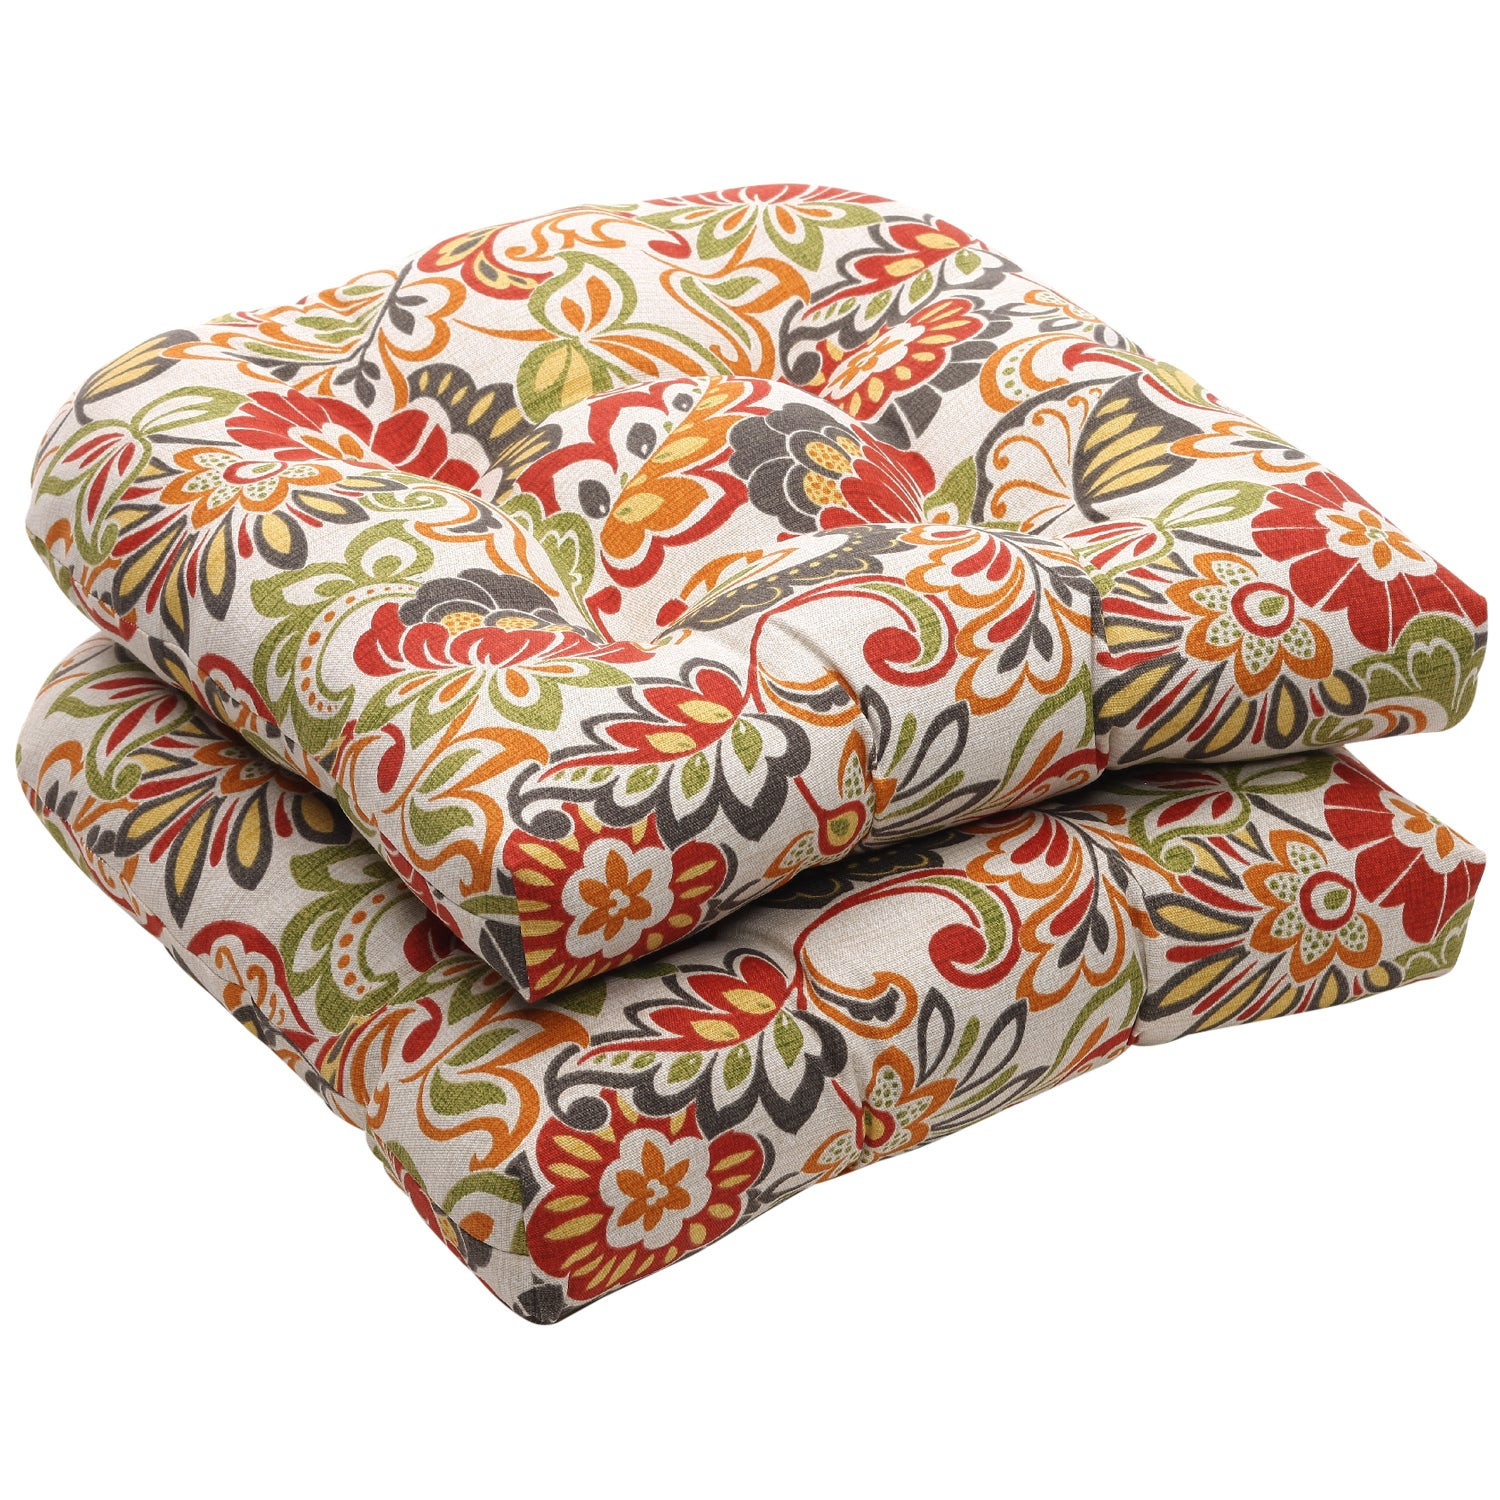 Best ideas about Outdoor Seat Cushions . Save or Pin Outdoor Multicolored Floral Wicker Seat Cushions Set of 2 Now.